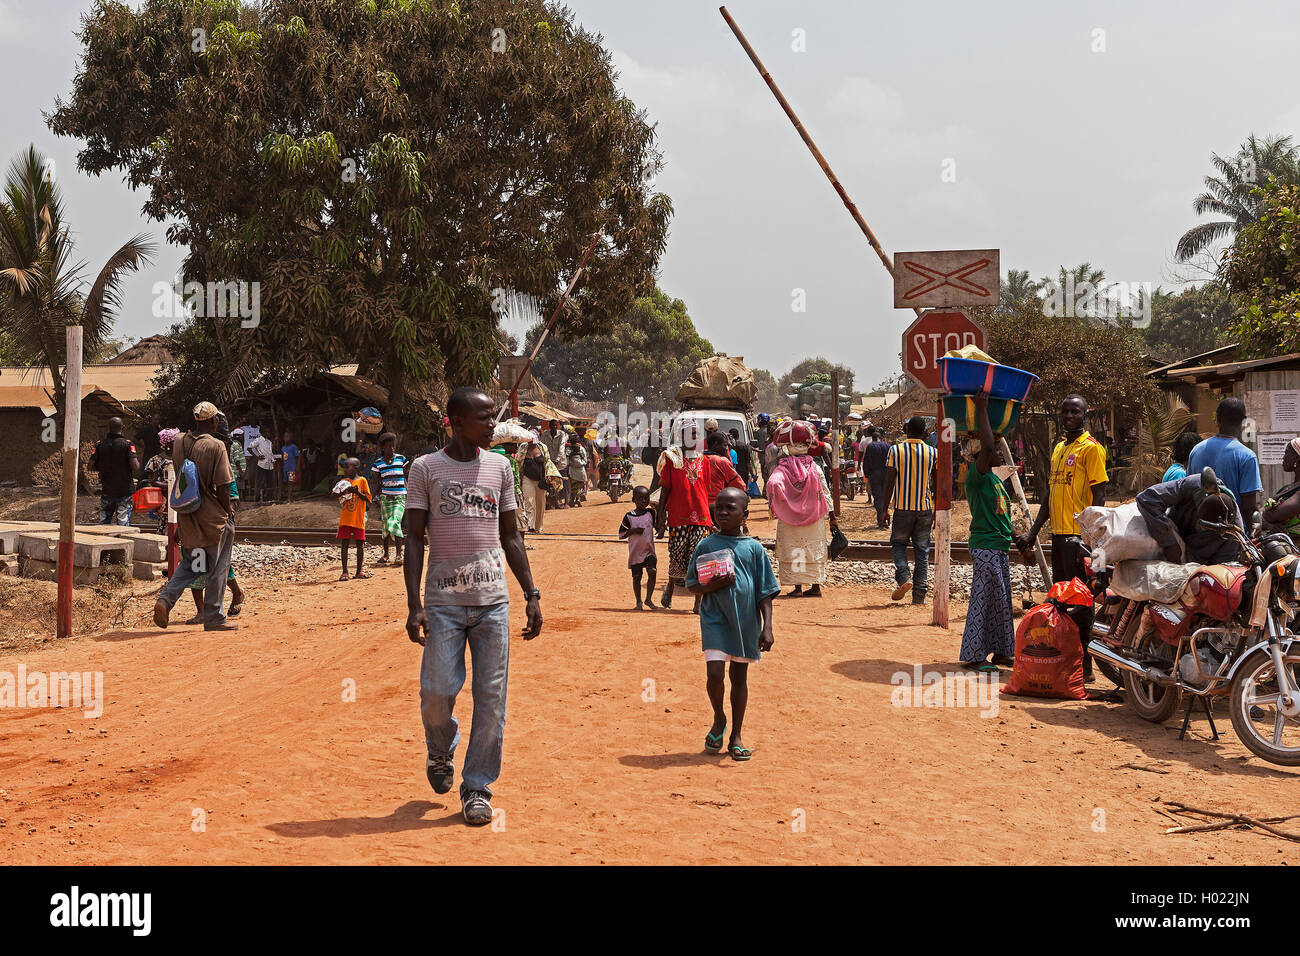 Iron ore project. Villagers on market day crossing train line at barrier after loaded ore train from mine passed - Stock Image